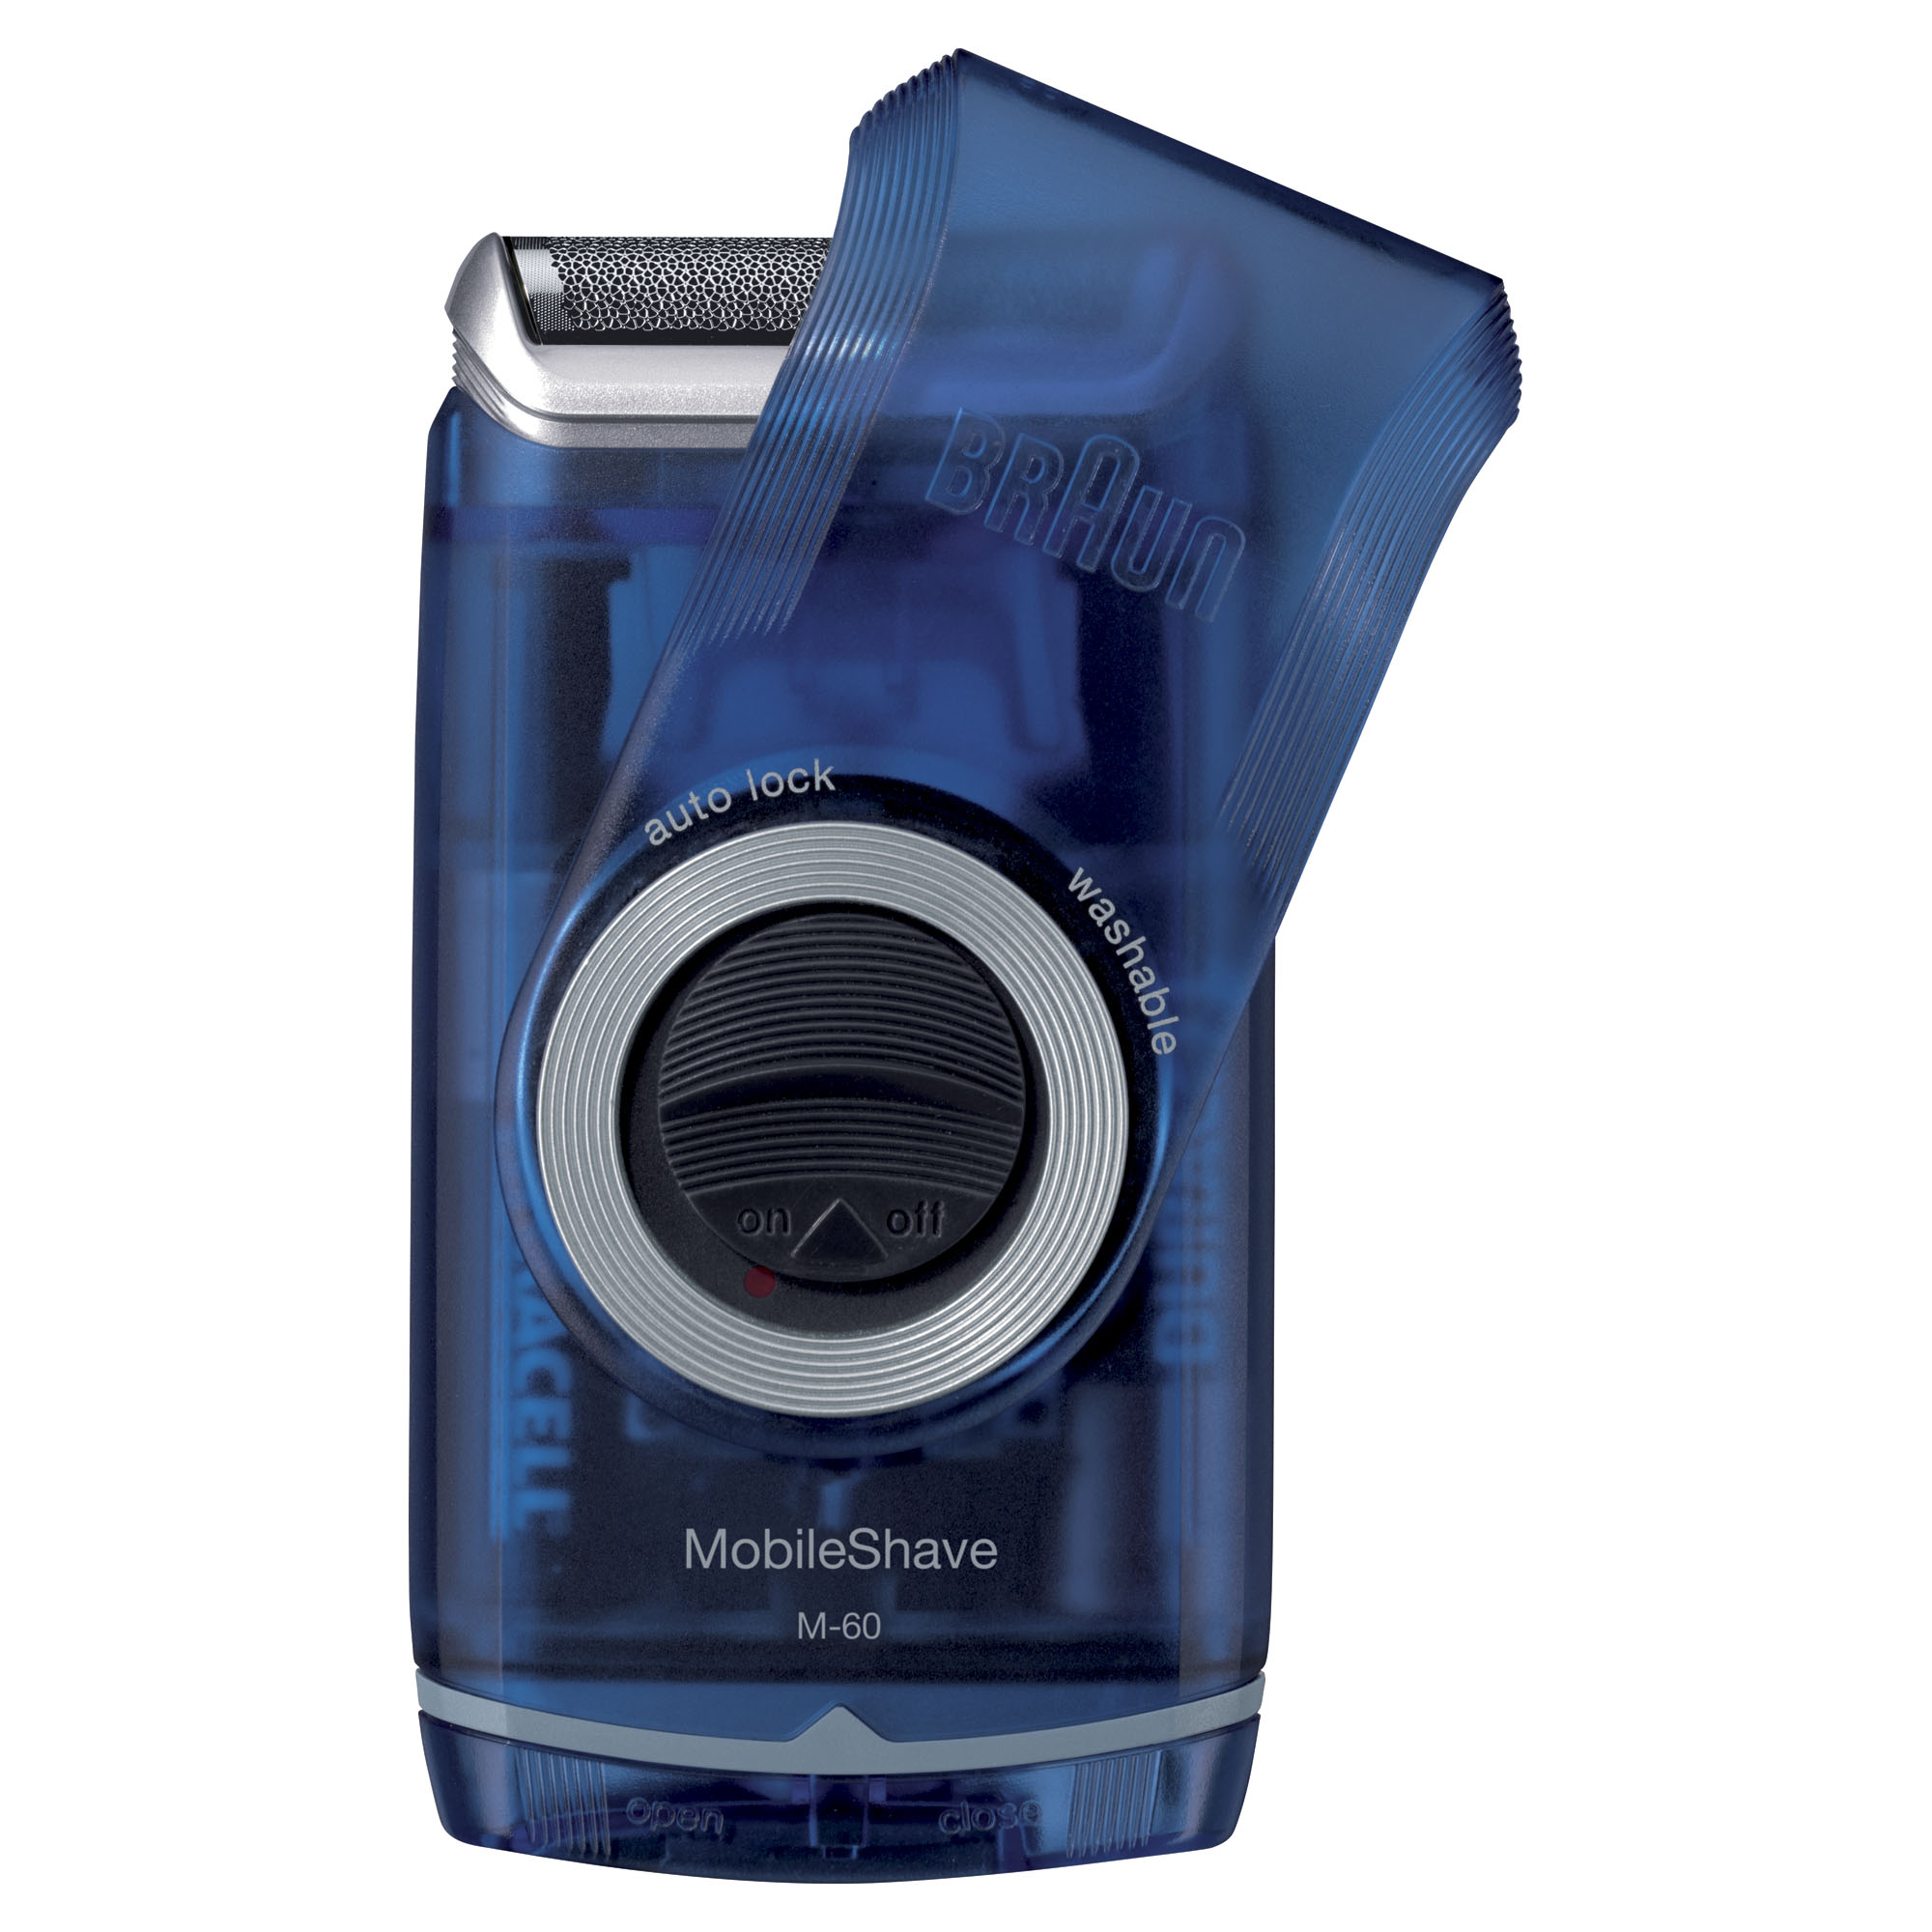 Braun Travel Mobile Men's Shaver - M60b